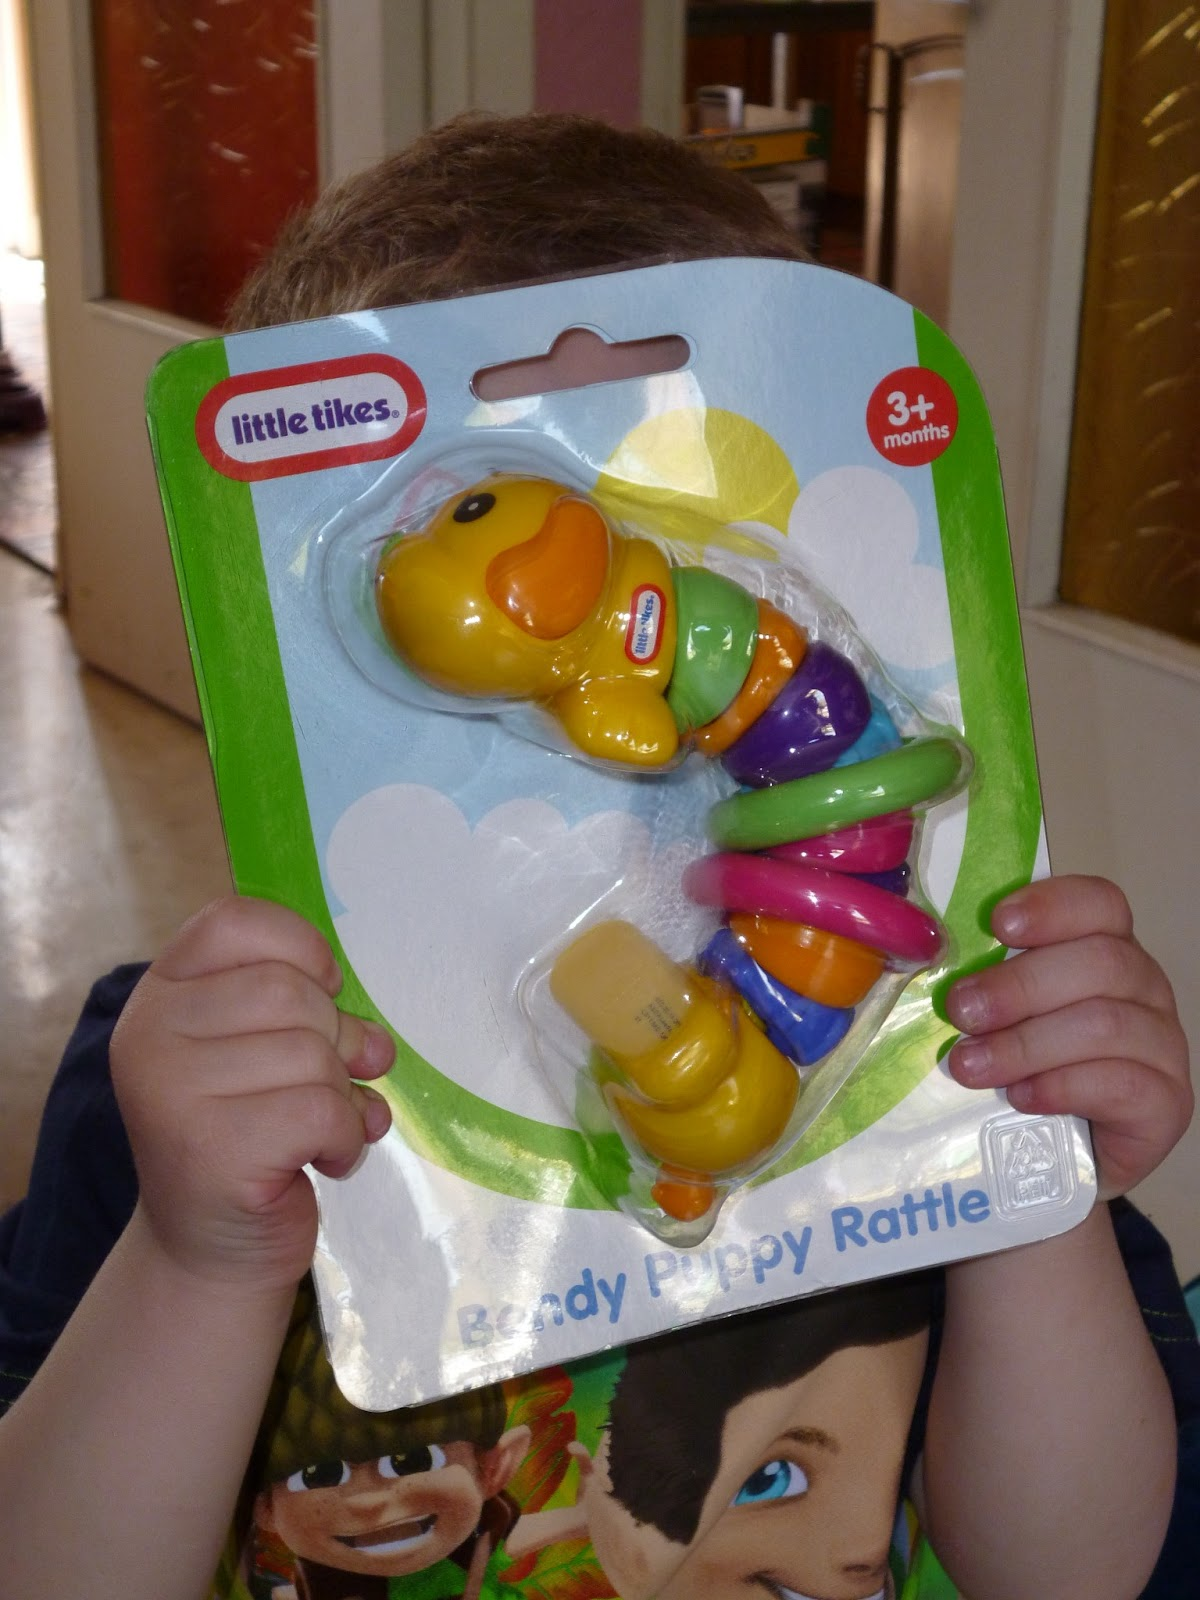 Madhouse Family Reviews ASDA Little Tikes toys review